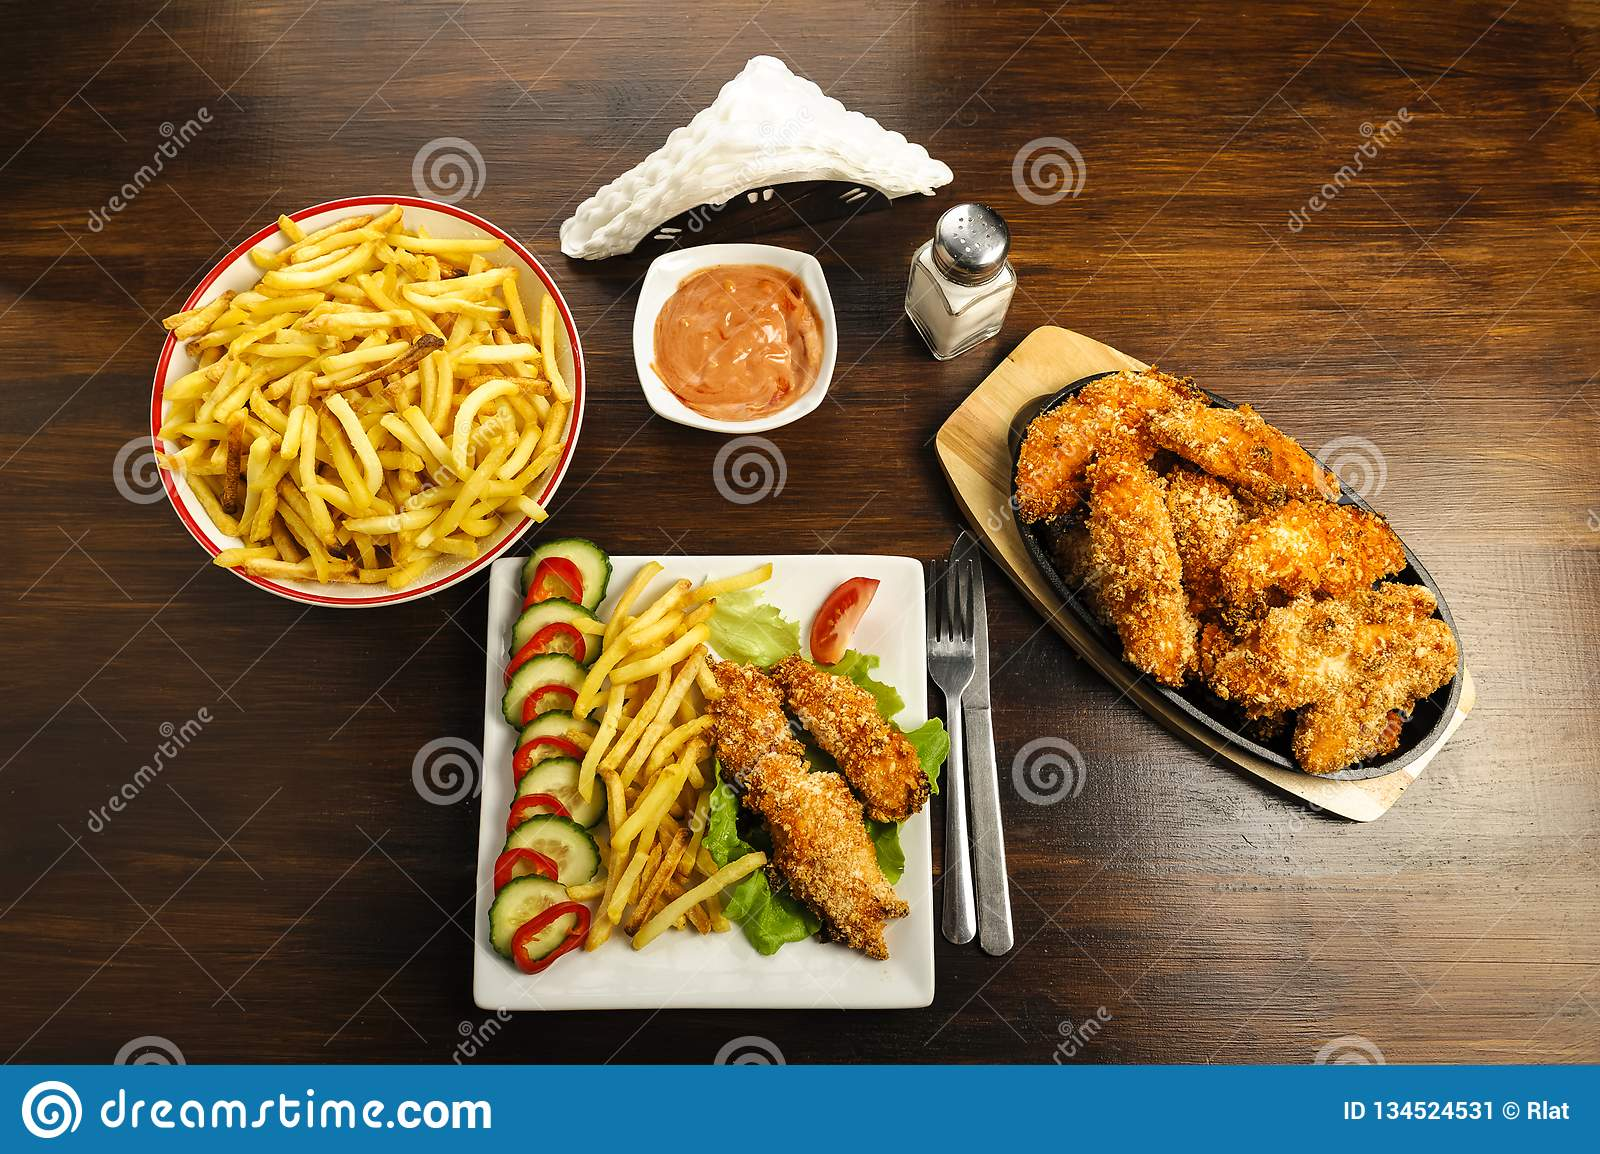 Chicken strips and fries